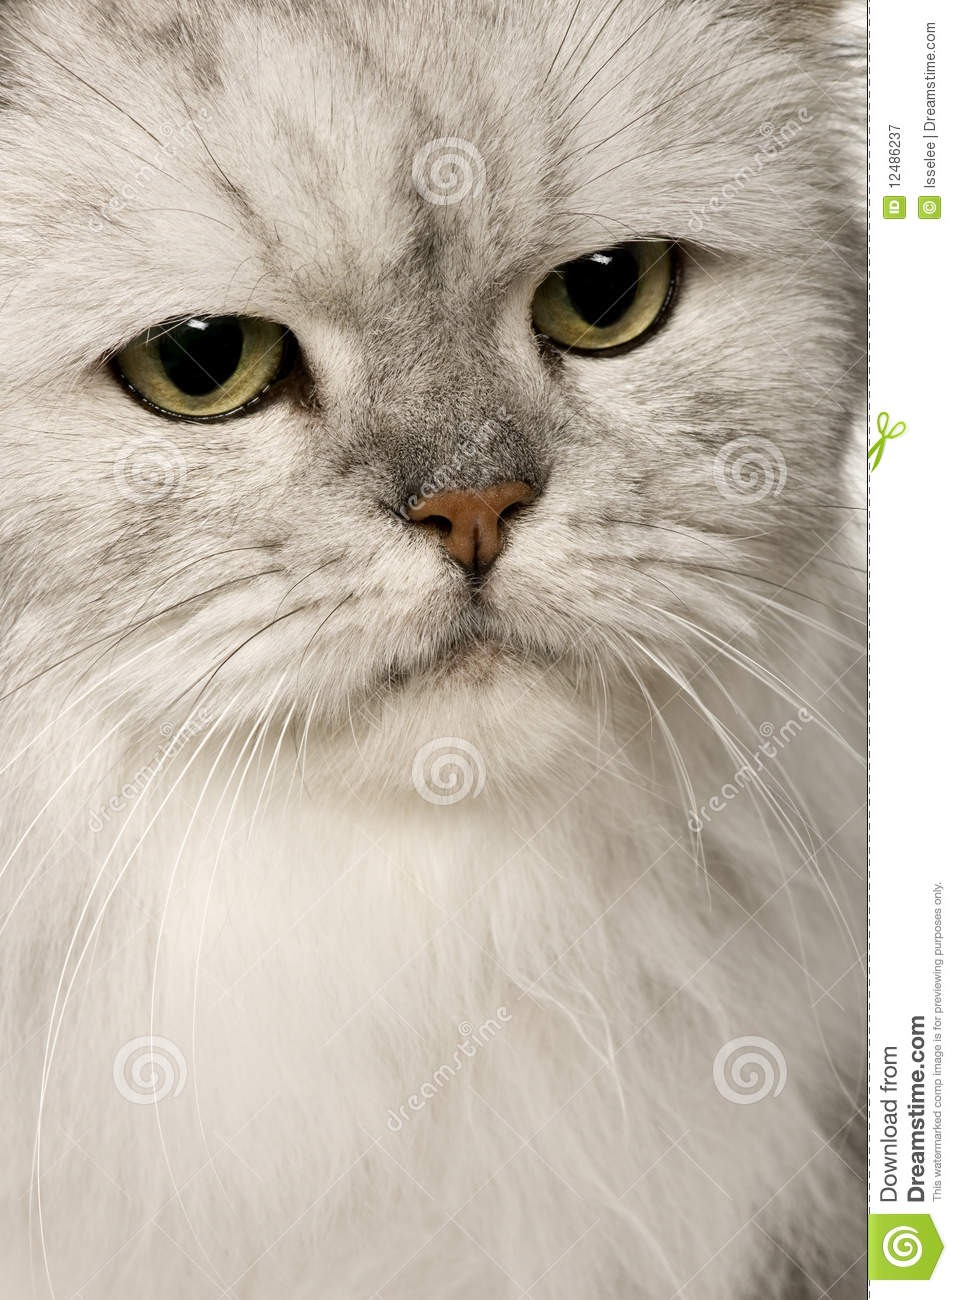 86ae9542445f Old Silver Persian cat stock image. Image of portrait - 12486237